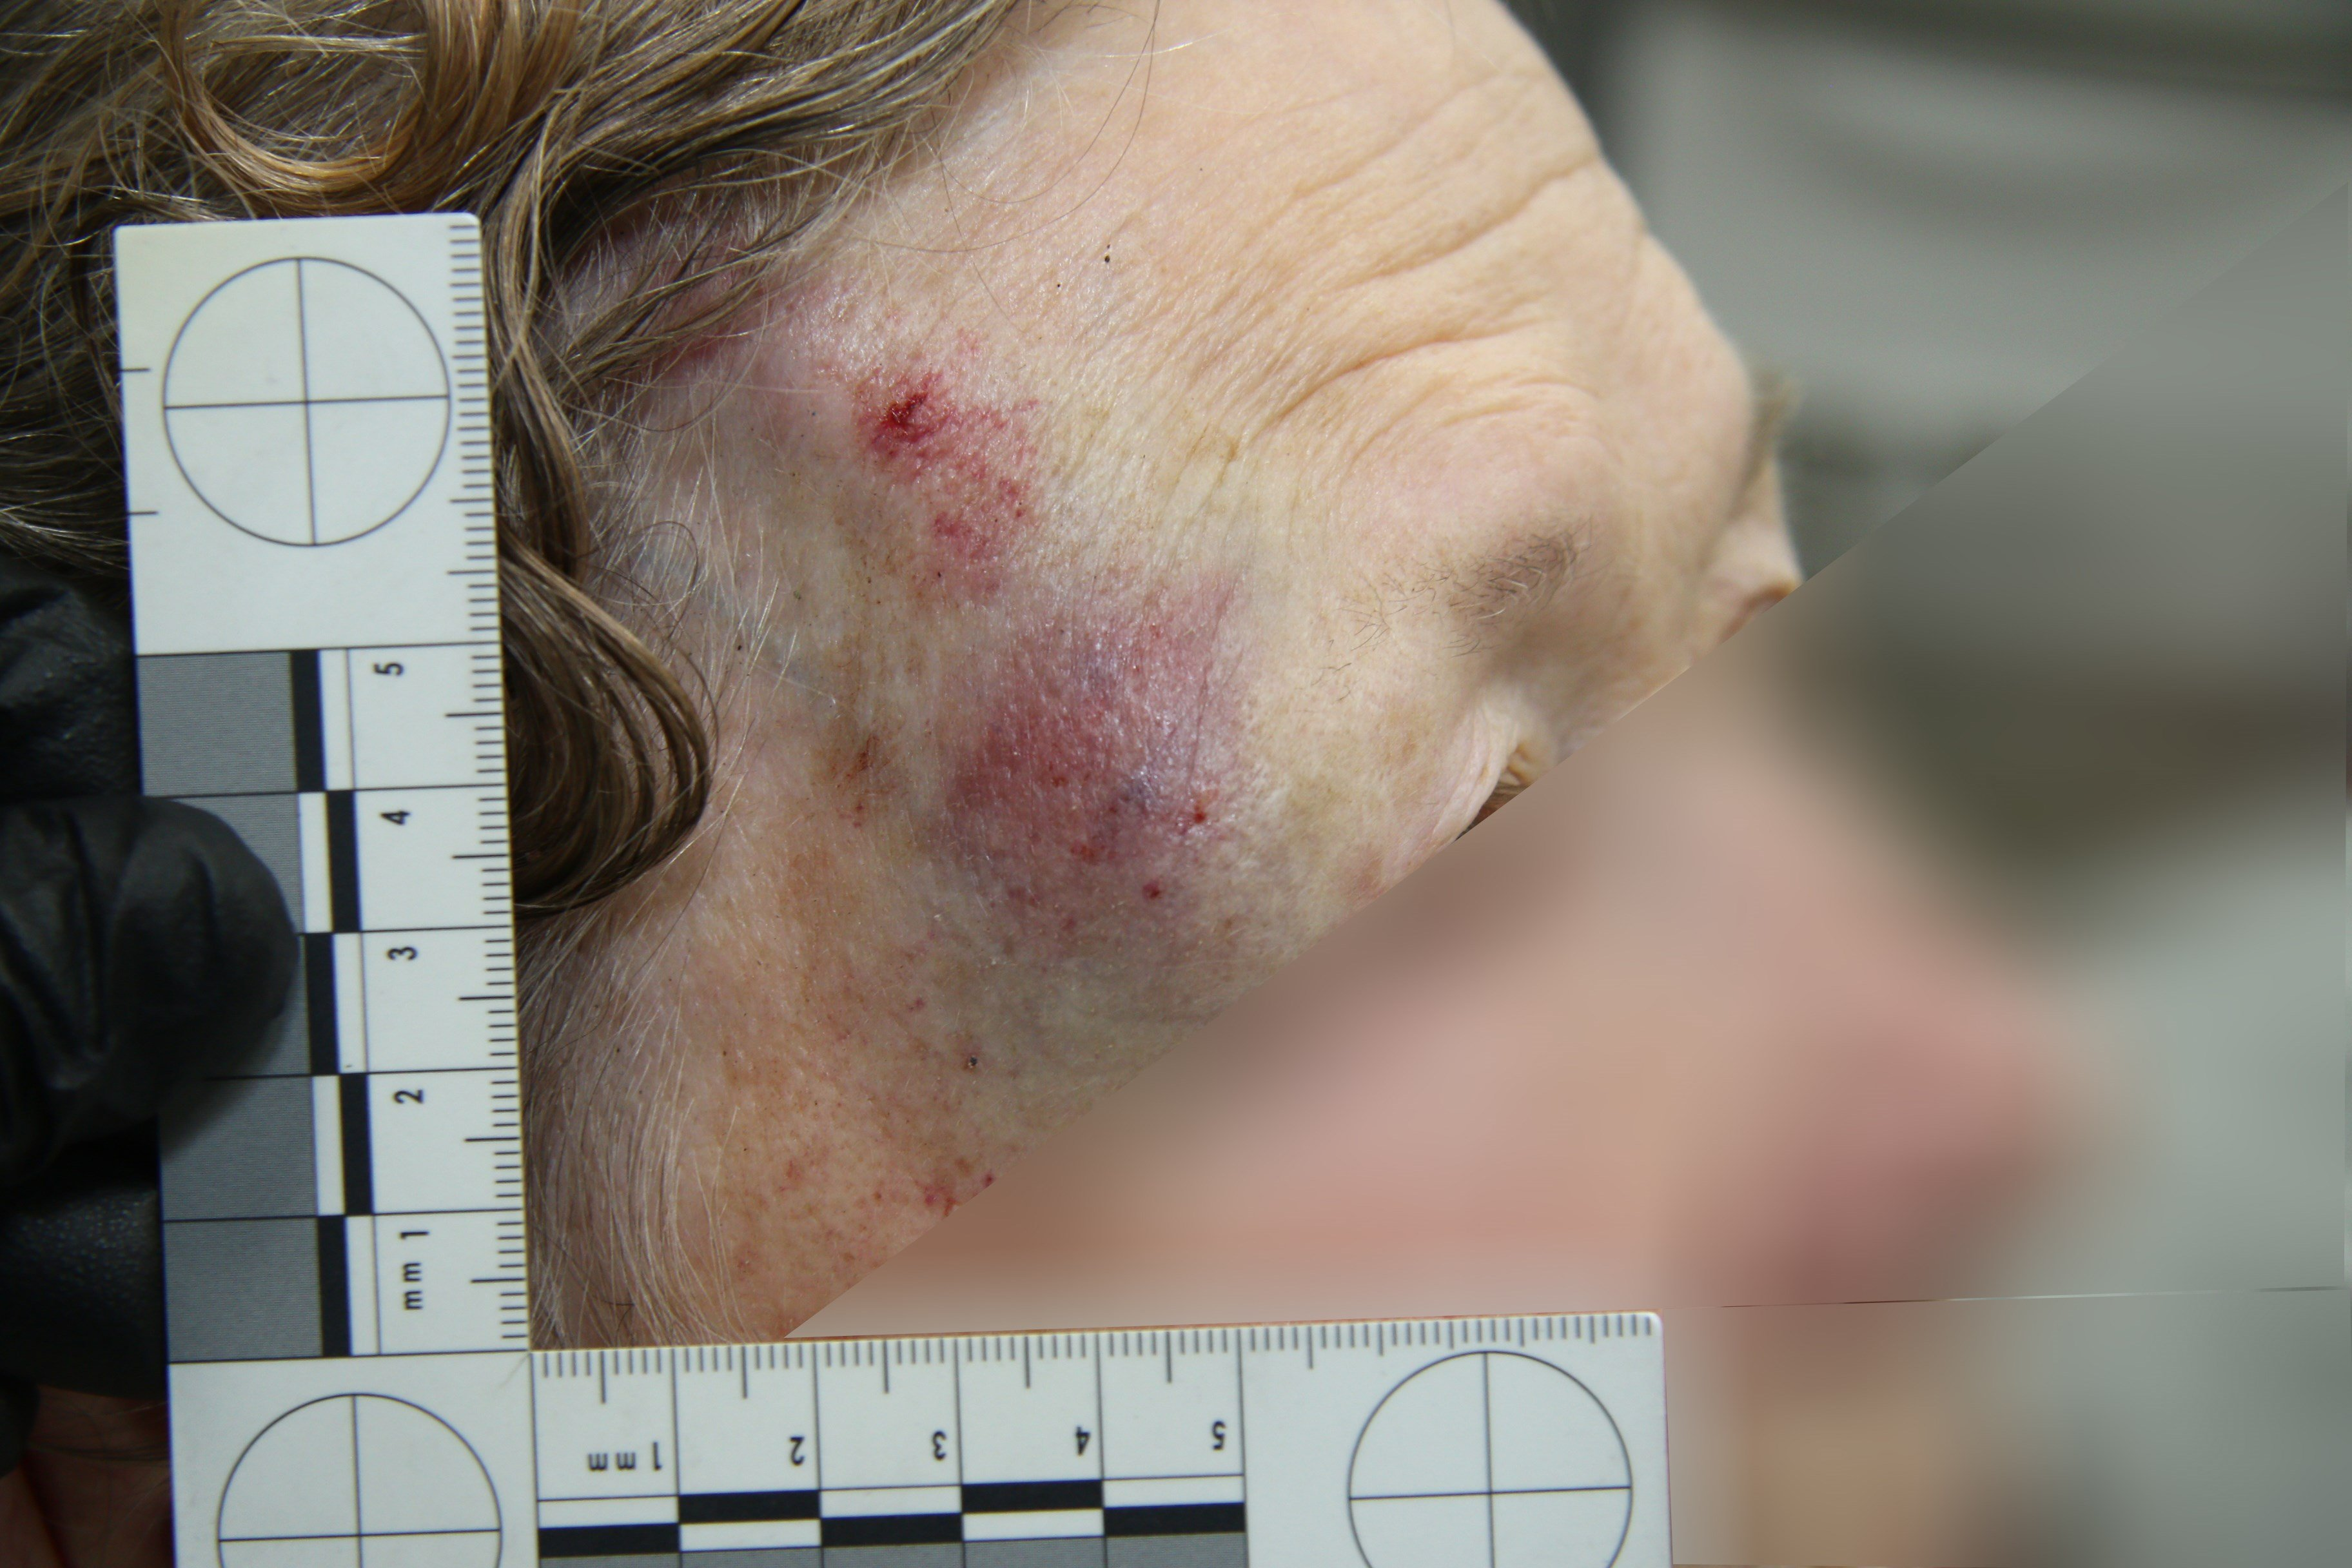 """Police saw that she was hurt and said firefighters should look at the """"bump on her head."""" (Source: Mesa Police Department)"""